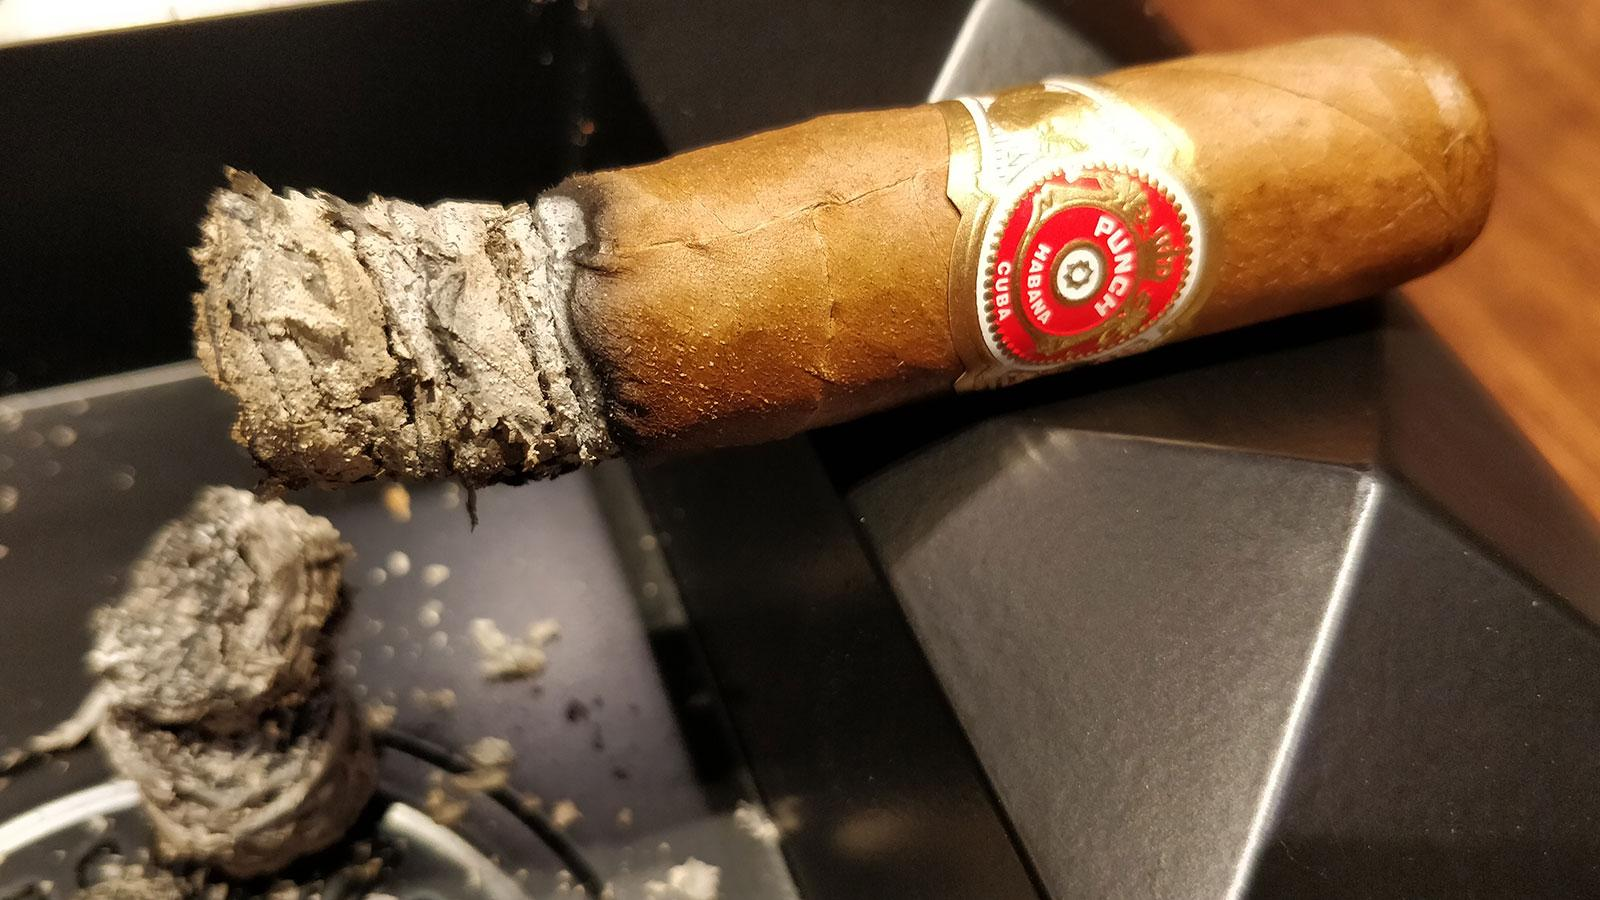 Note how this Cuban Punch burns a distinct gray ash.